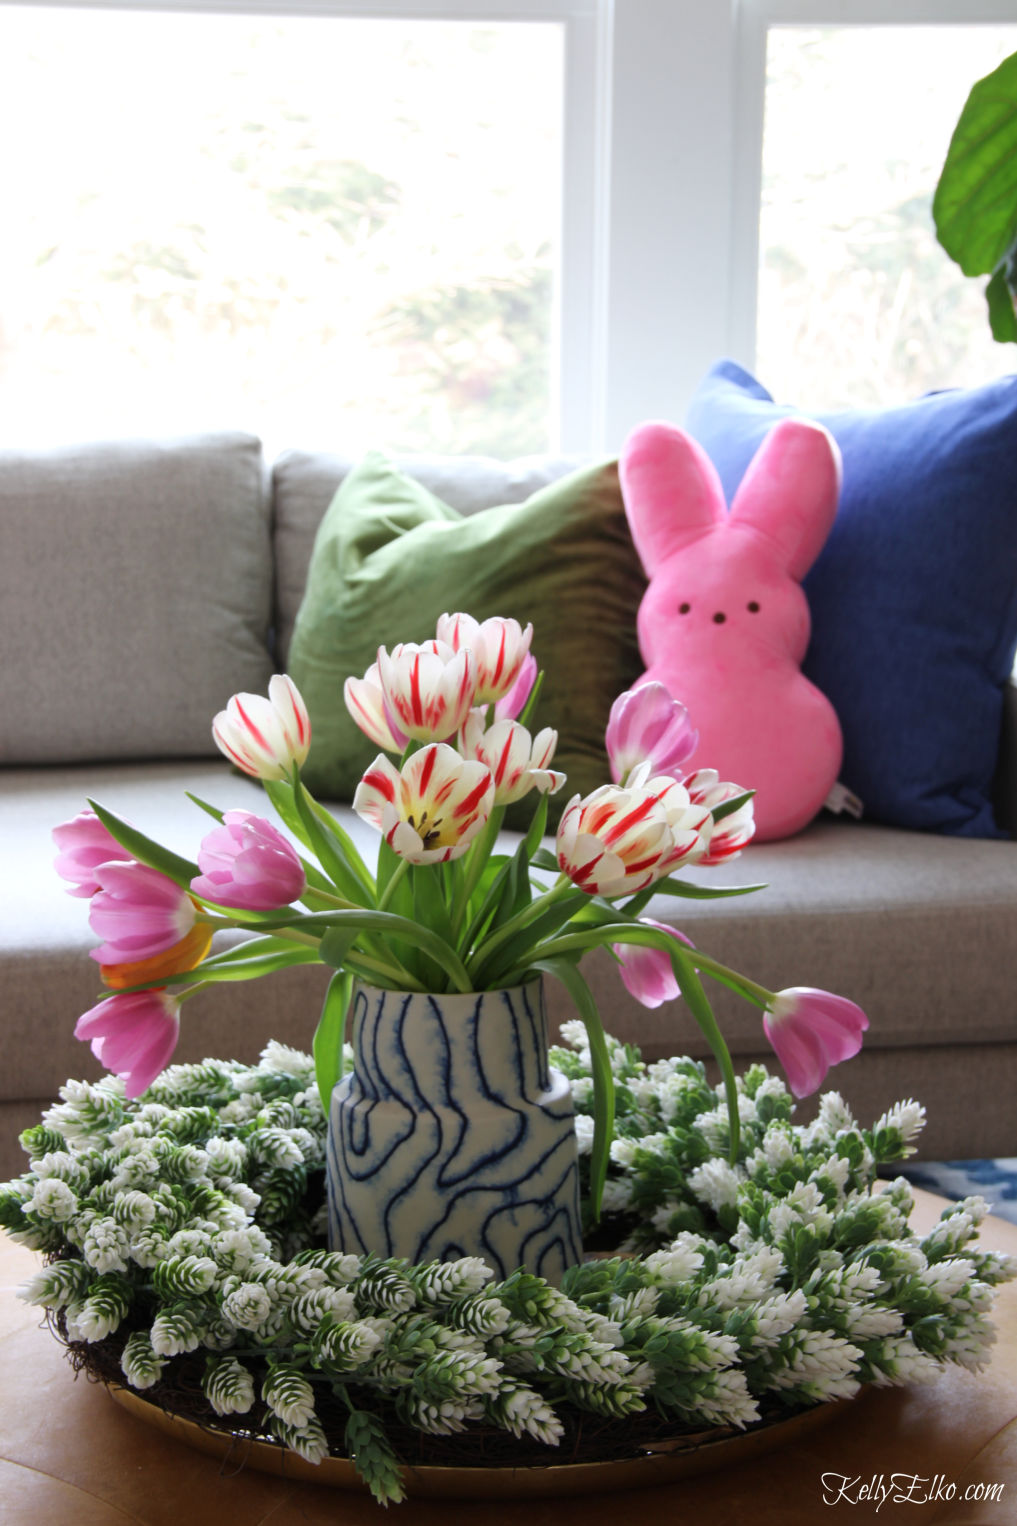 Pink tulips and matching pink Peep pillow! kellyelko.com #peeps #tulips #springdecor #easterdecor #familyroomdecor